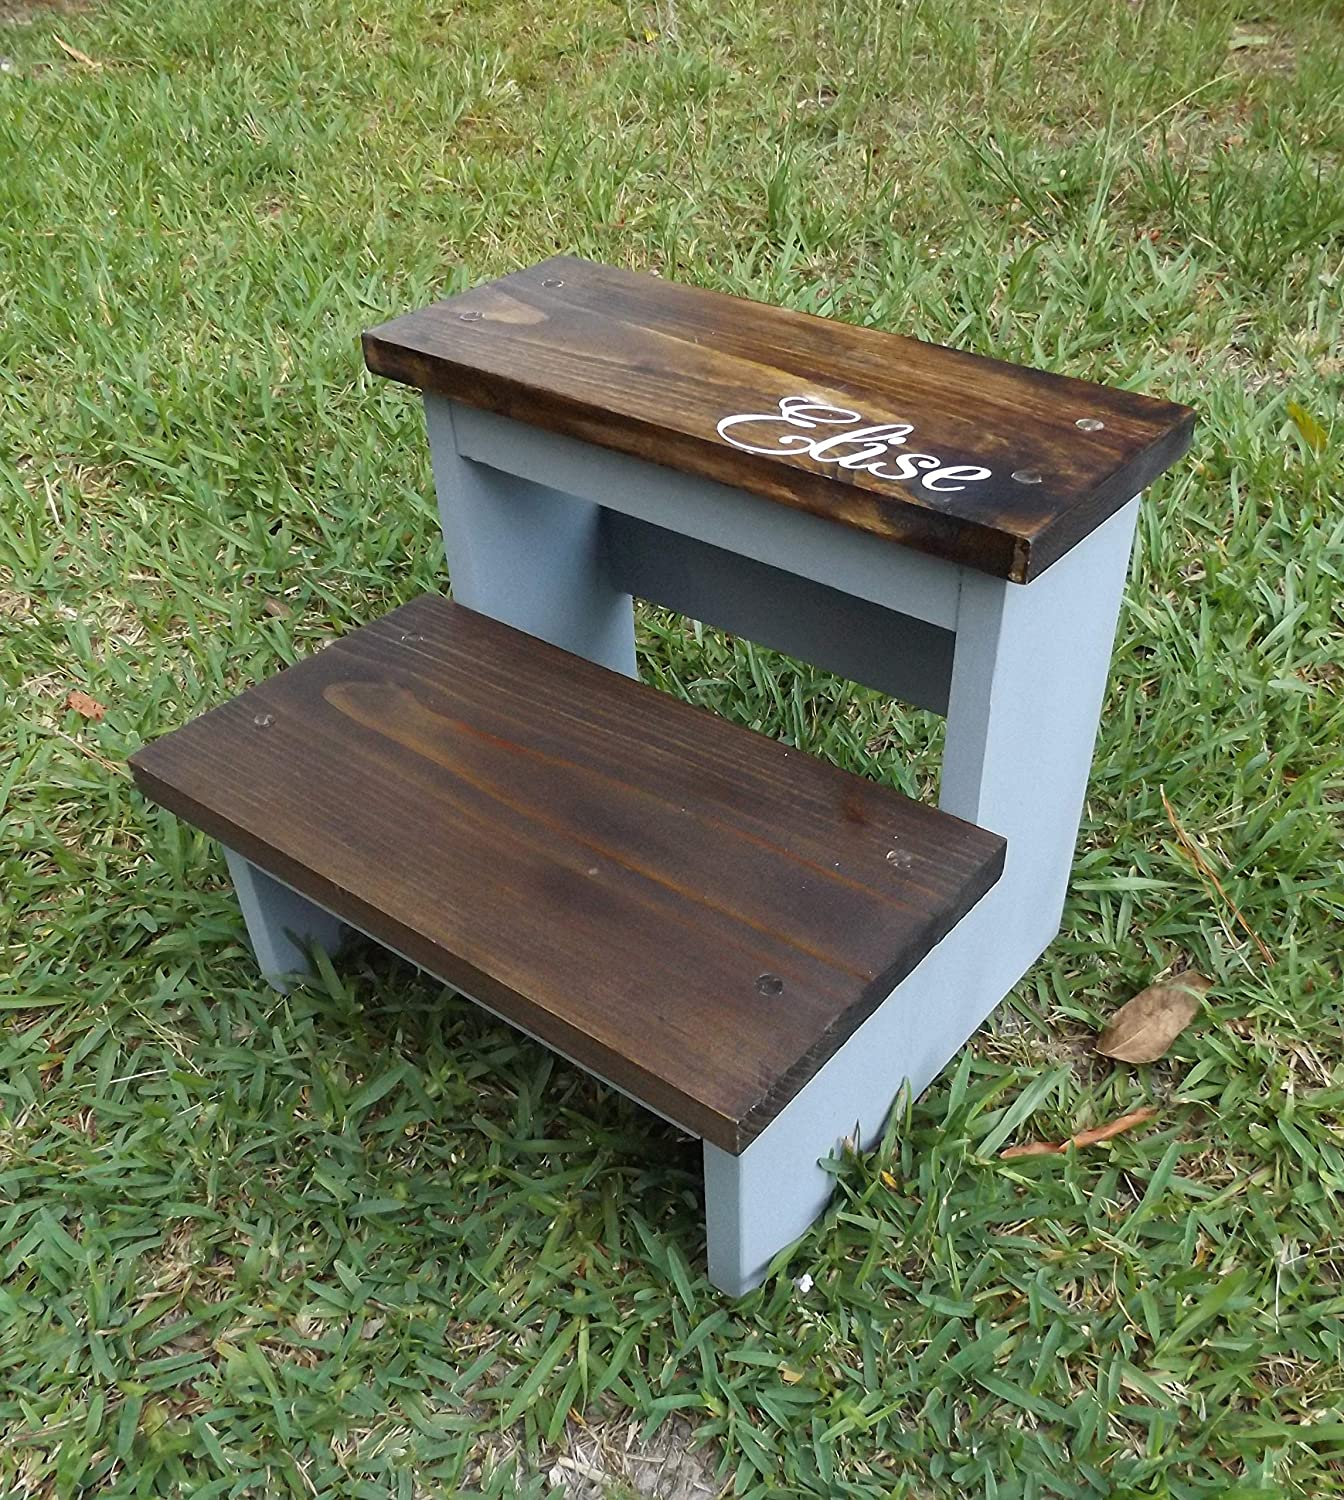 Prime Amazon Com Childs Step Stool Persoalized Handmade Wooden 2 Alphanode Cool Chair Designs And Ideas Alphanodeonline